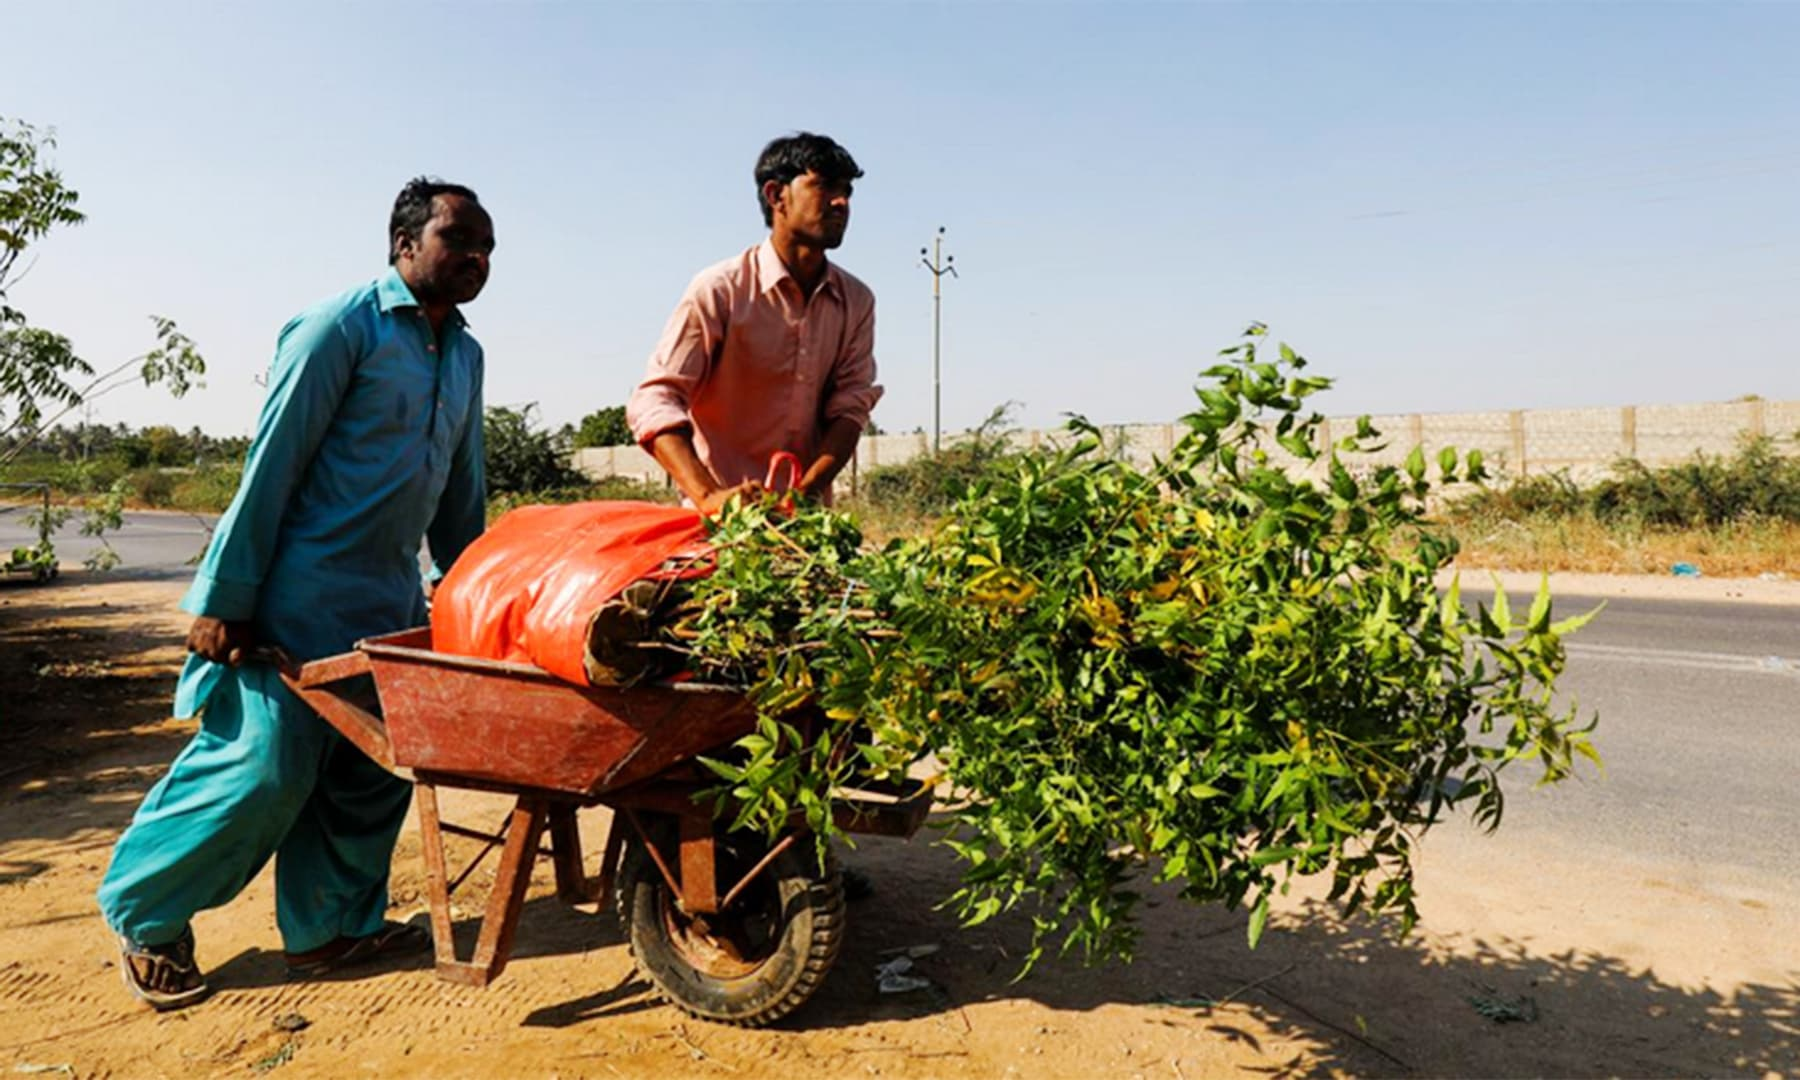 Labourers move a wheelbarrow with bags of plants to be transported for planting along the pilgrimage route from Najaf to Karbala, at a farm on the outskirts of Karachi, on Friday. — Reuters